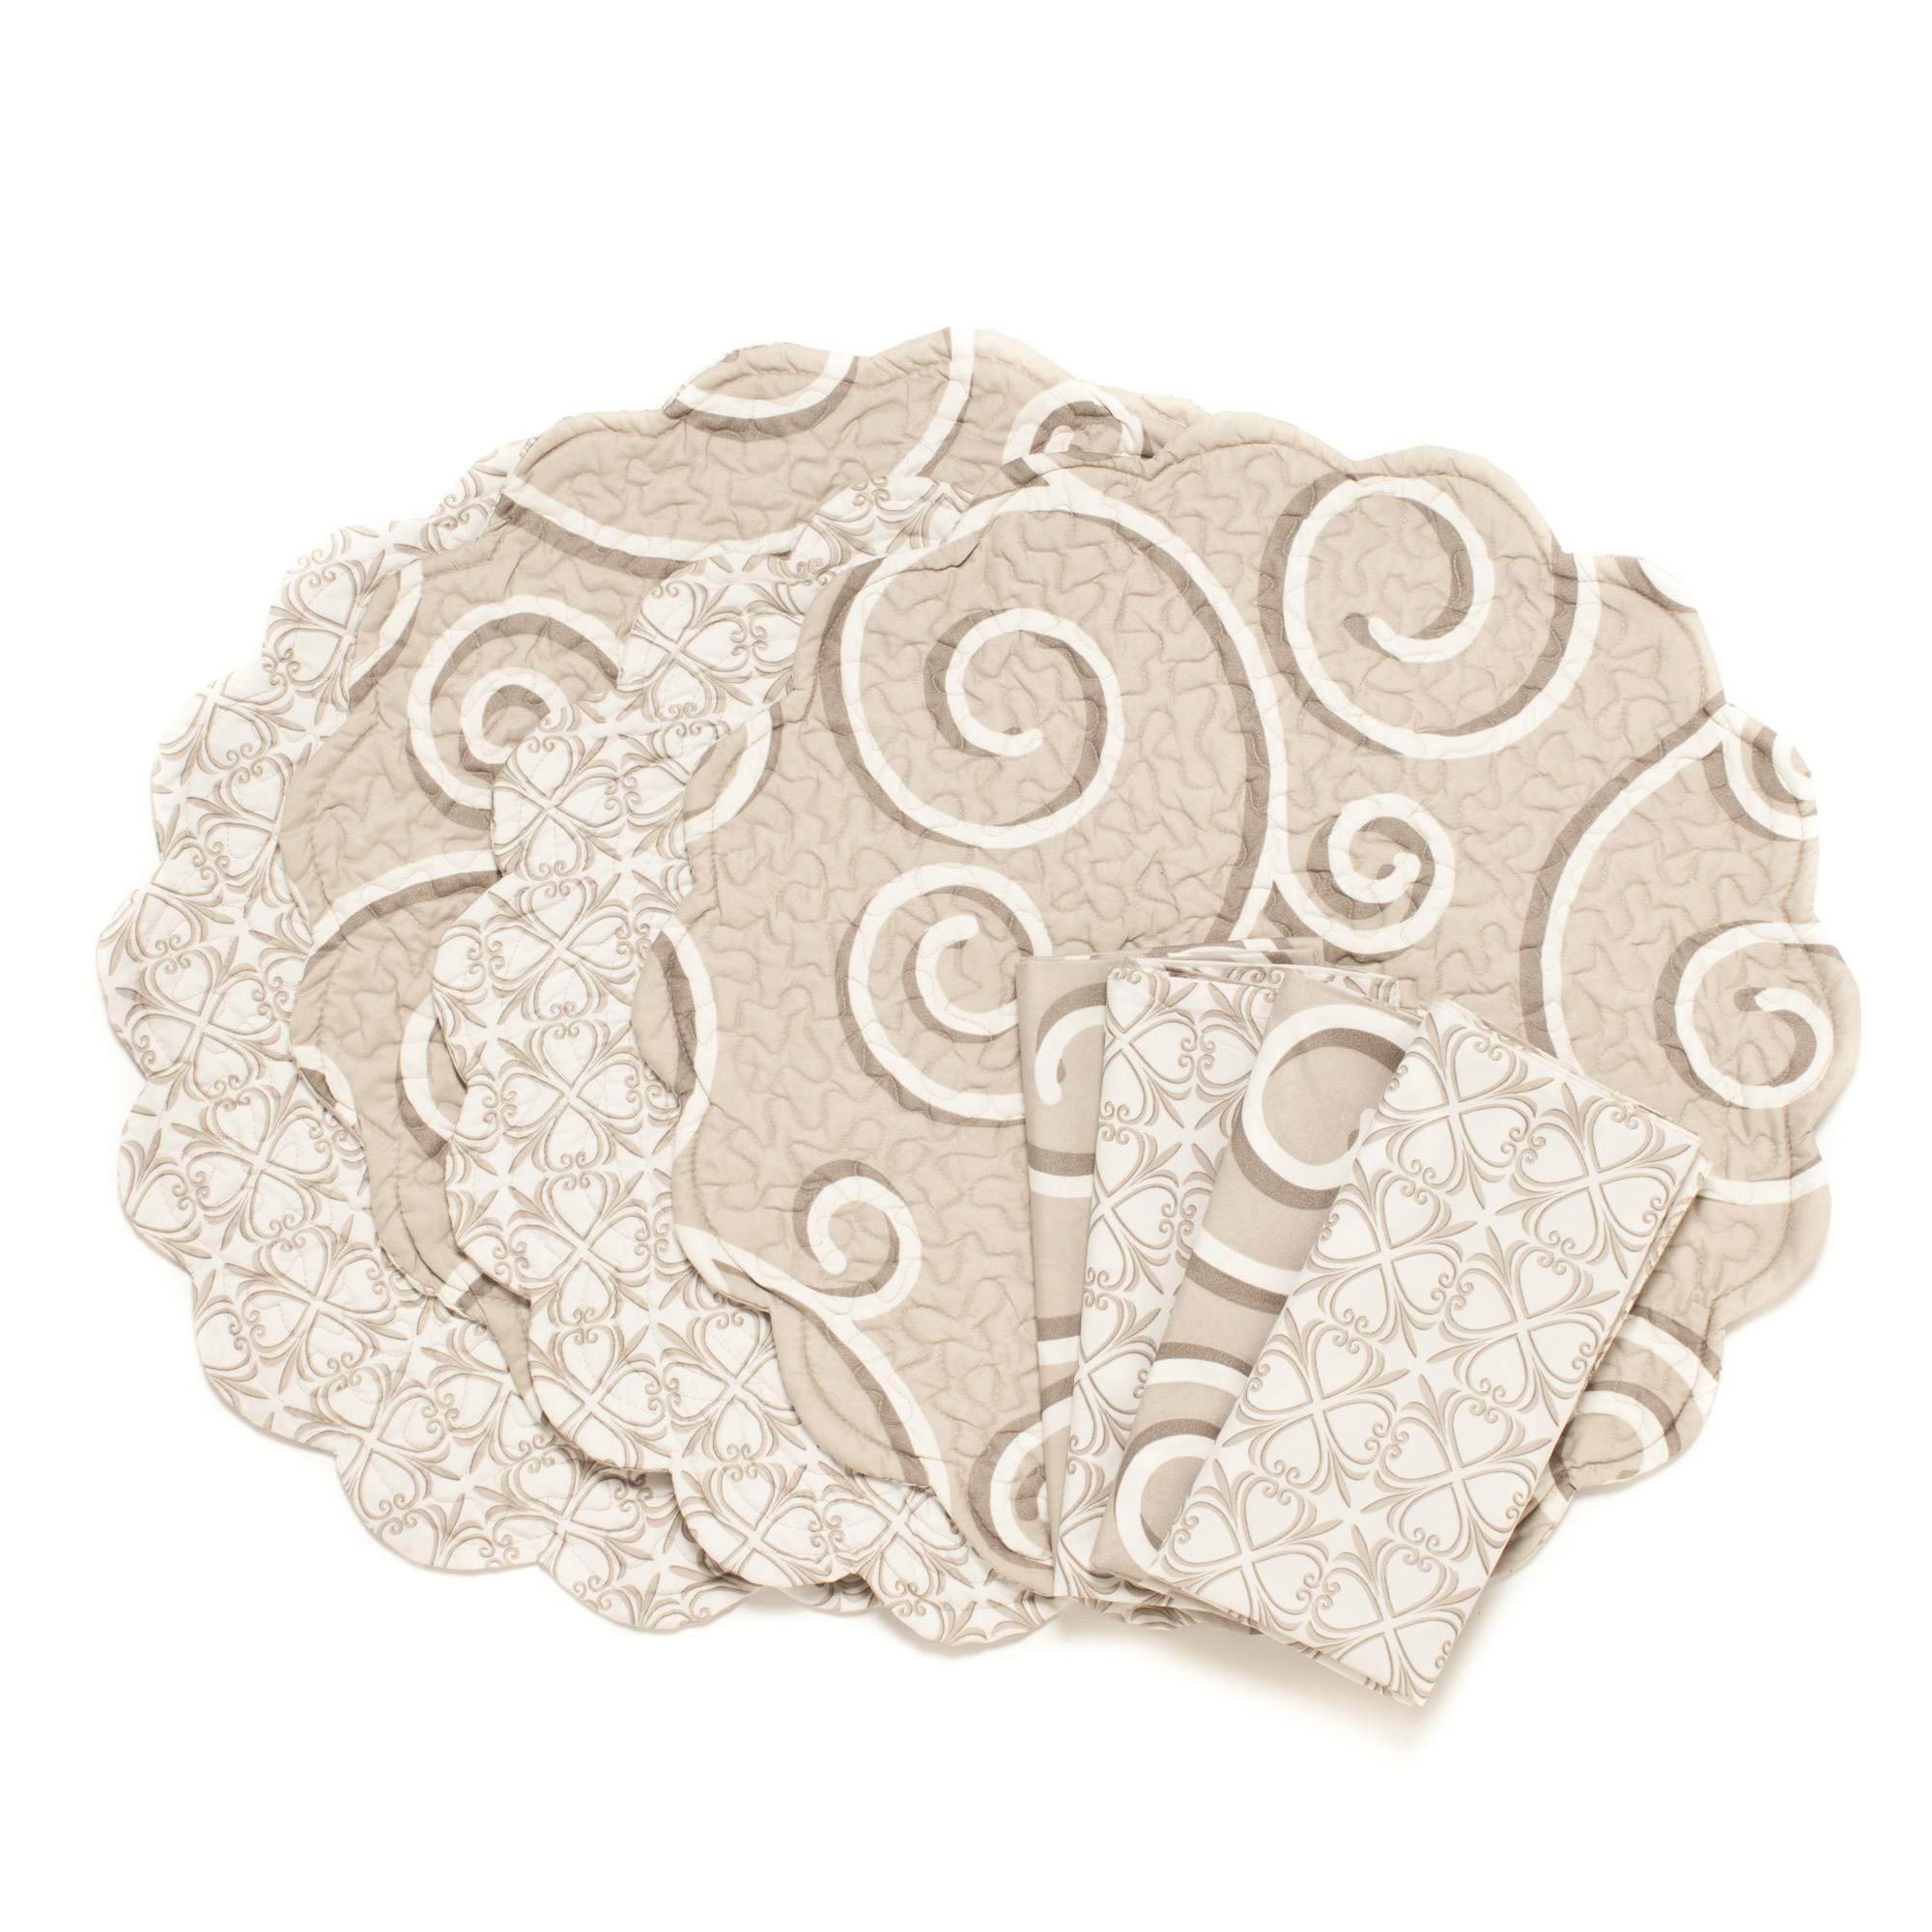 Montpellier Reversible Napkins, Set of 4